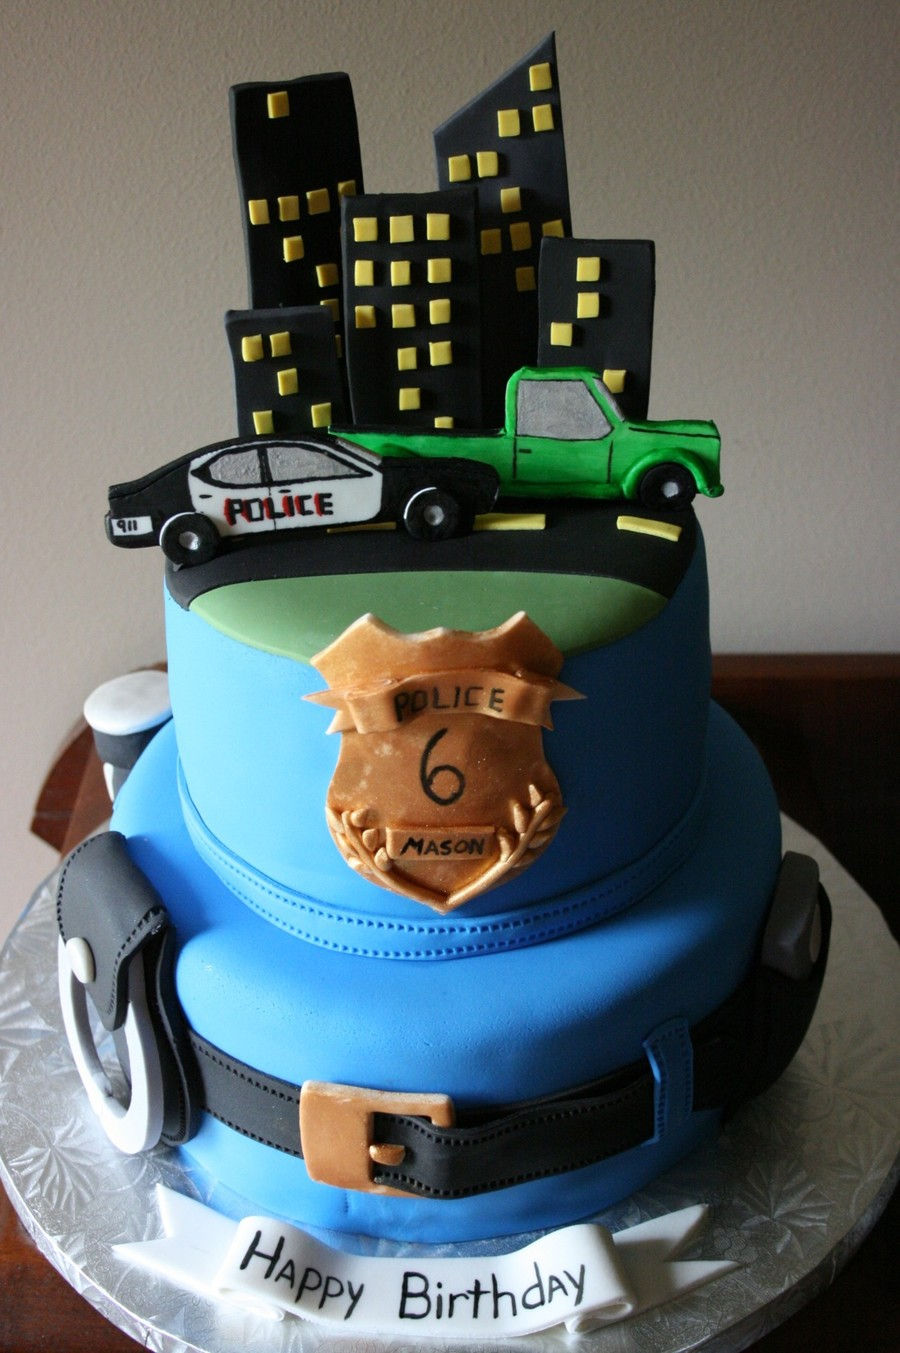 Cake Decorations For Police Cake : Police Officer Cake - CakeCentral.com